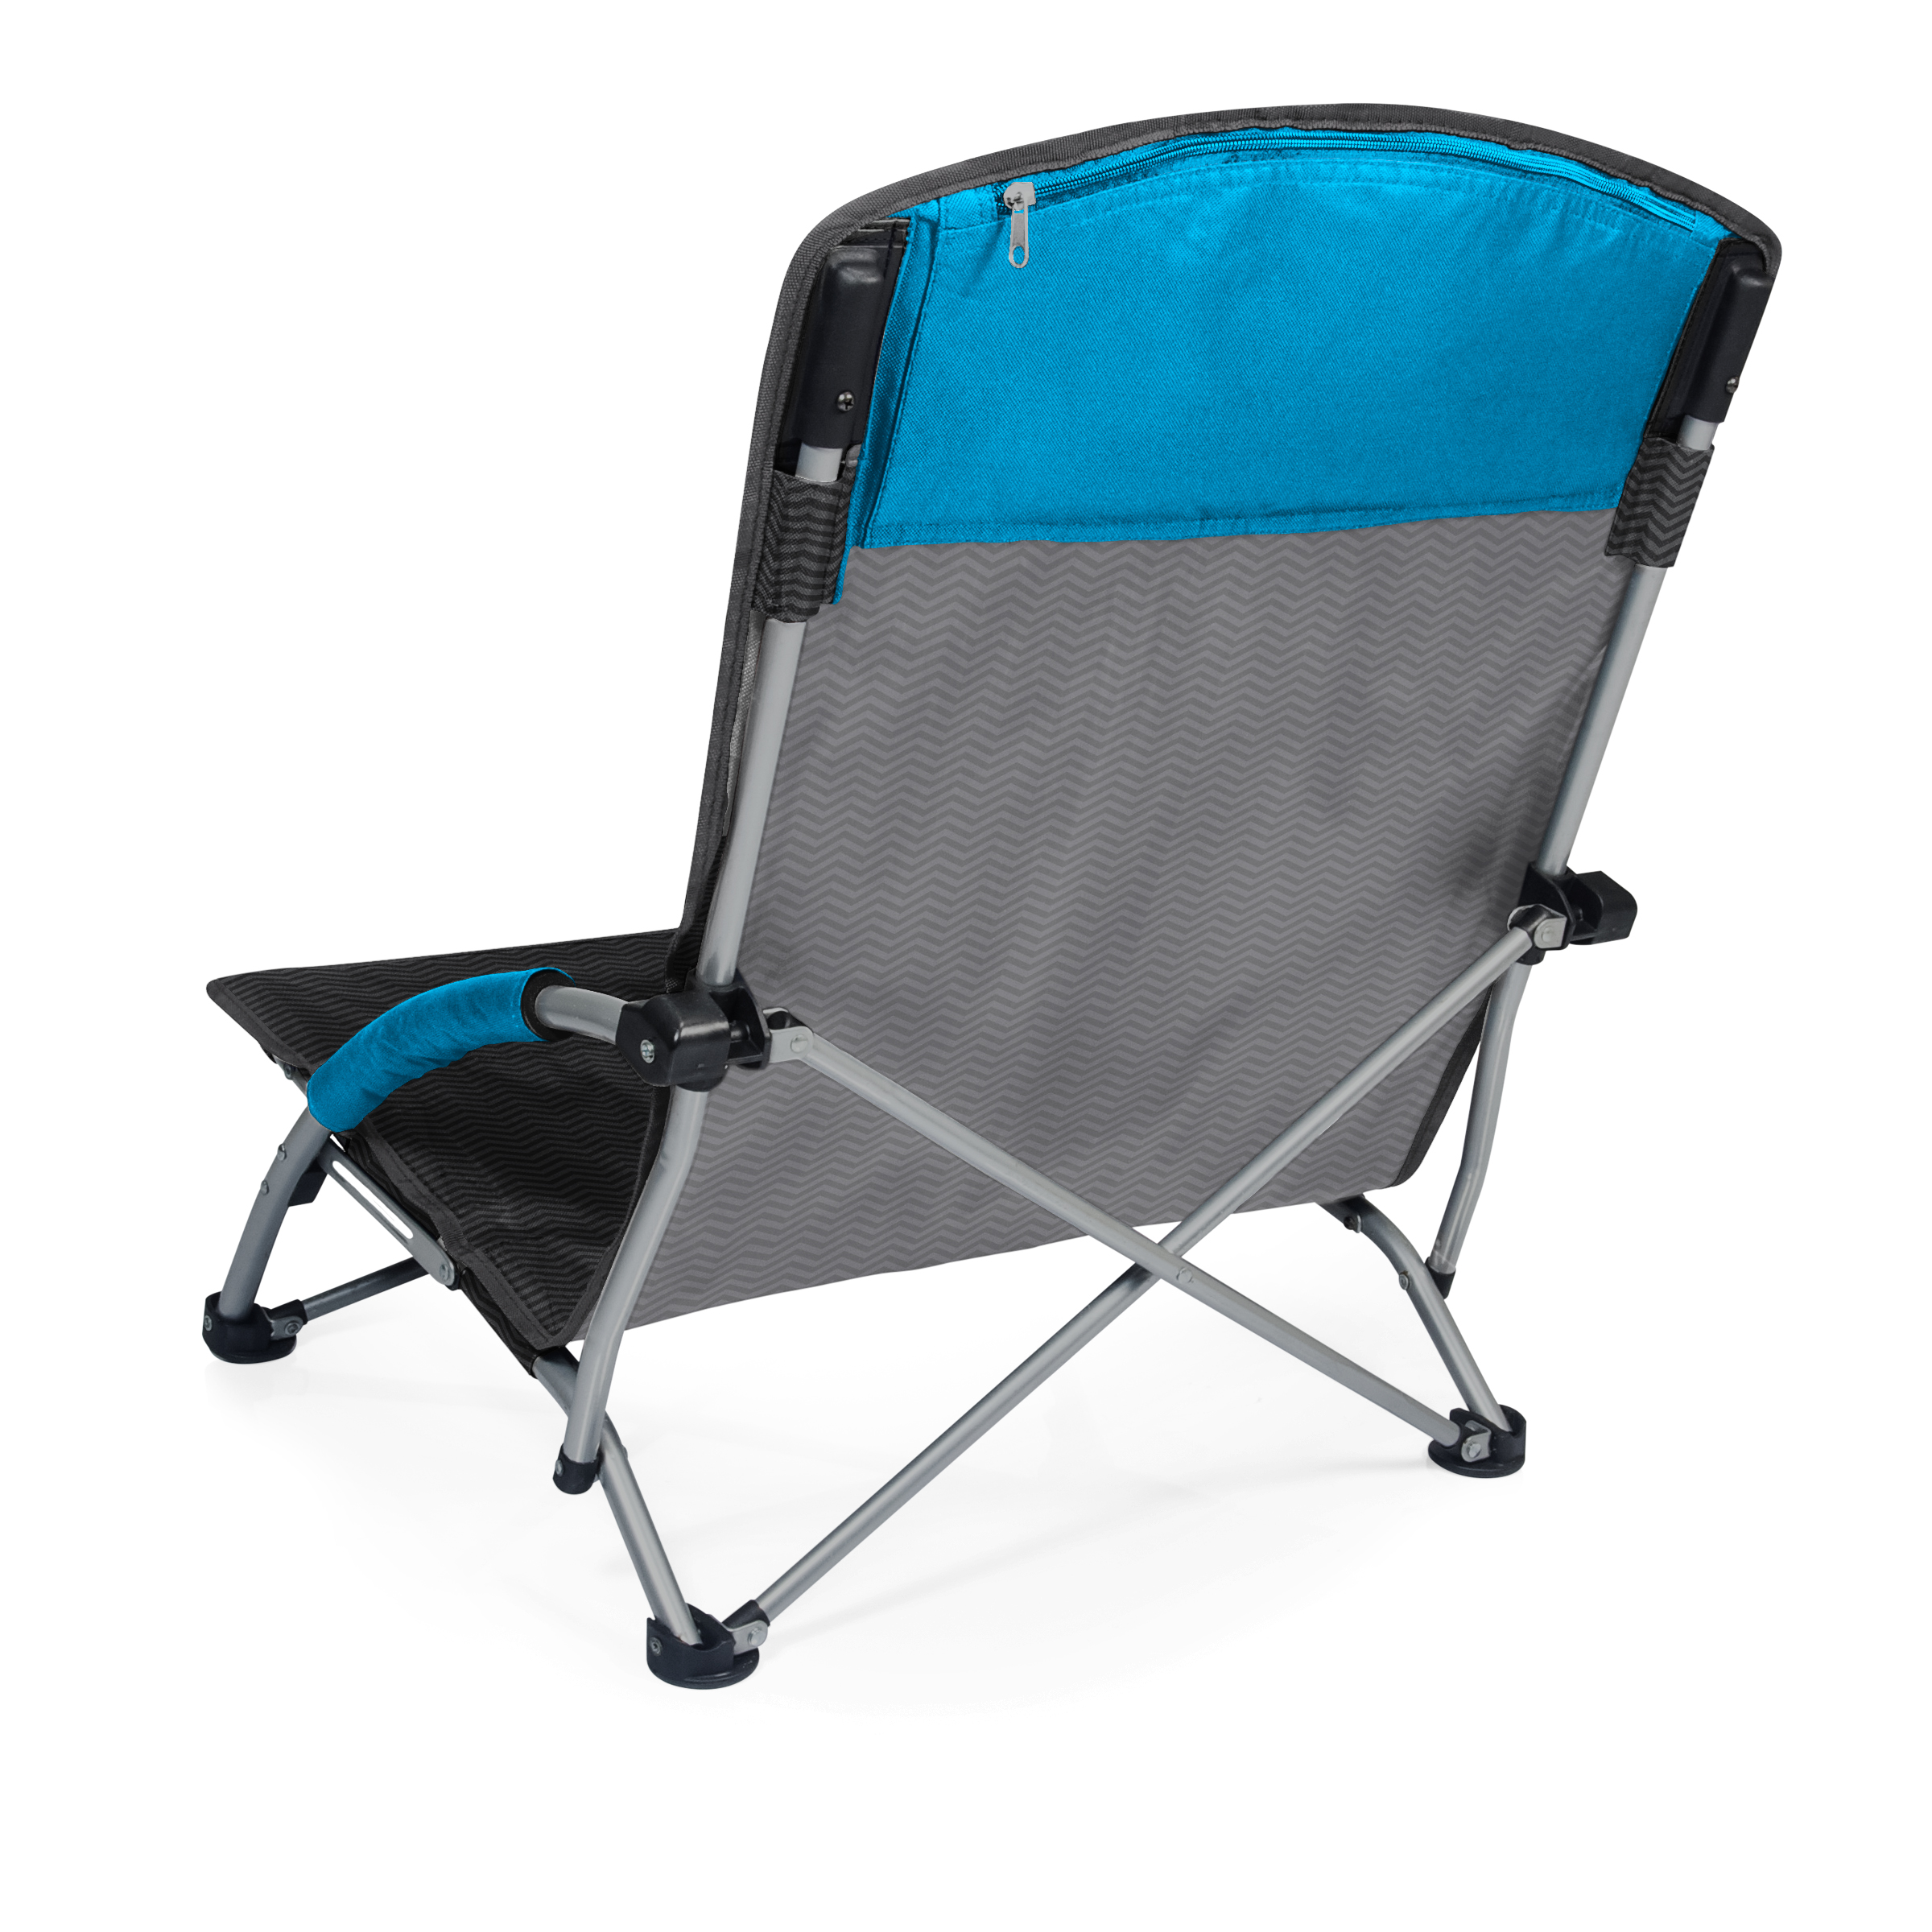 Picnic Time Tranquility Chair Portable Beach Chair Waves